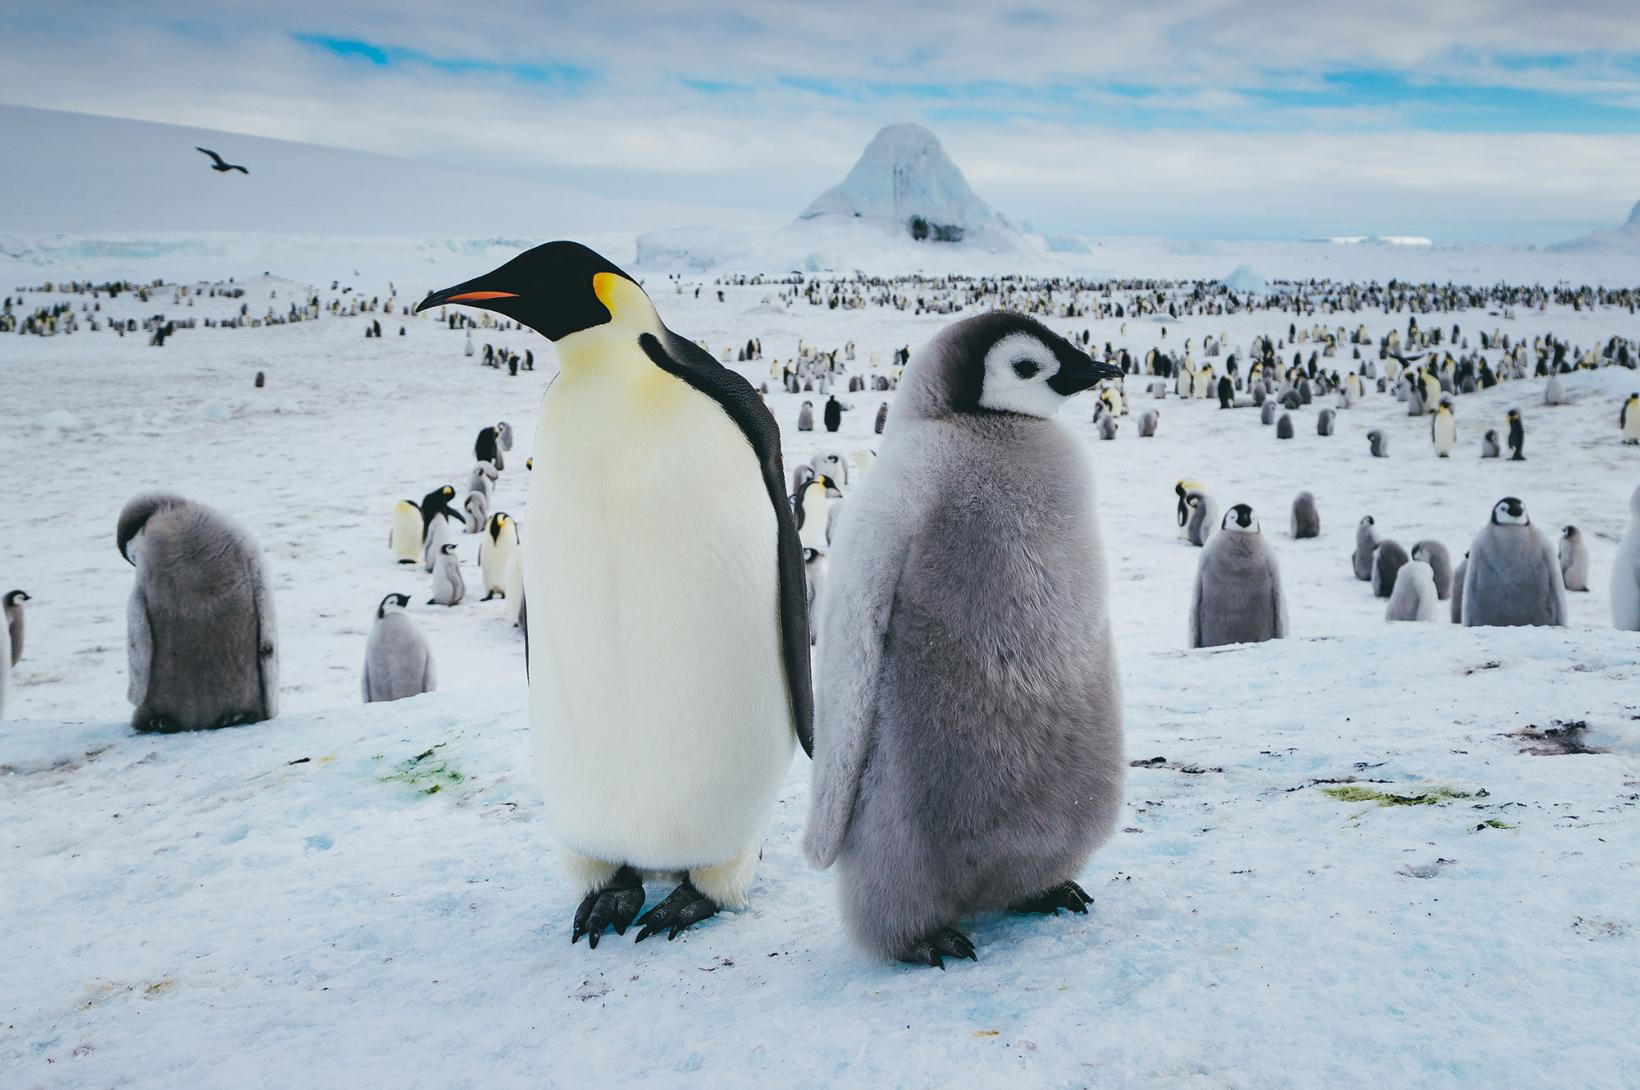 adult and adolescent Emperor penguin standing back to back in a colony of penguins on Snow Hill Island